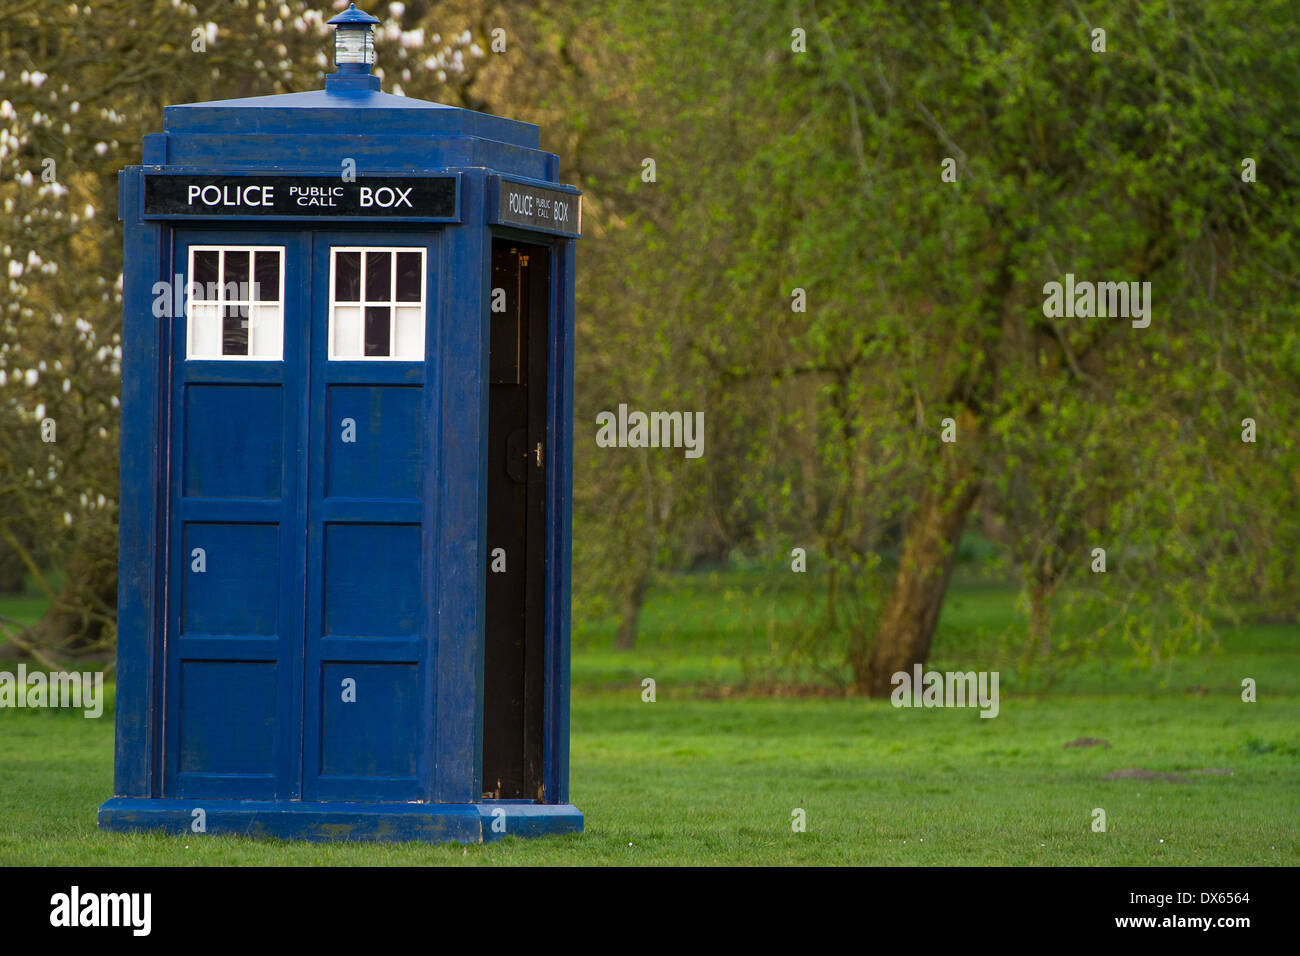 CARDIFF, UK. 18th March 2014. The cast of BBC Doctor Who are spotted filming in Bute Park in the city centre. Credit:  Polly Thomas / Alamy Live News - Stock Image